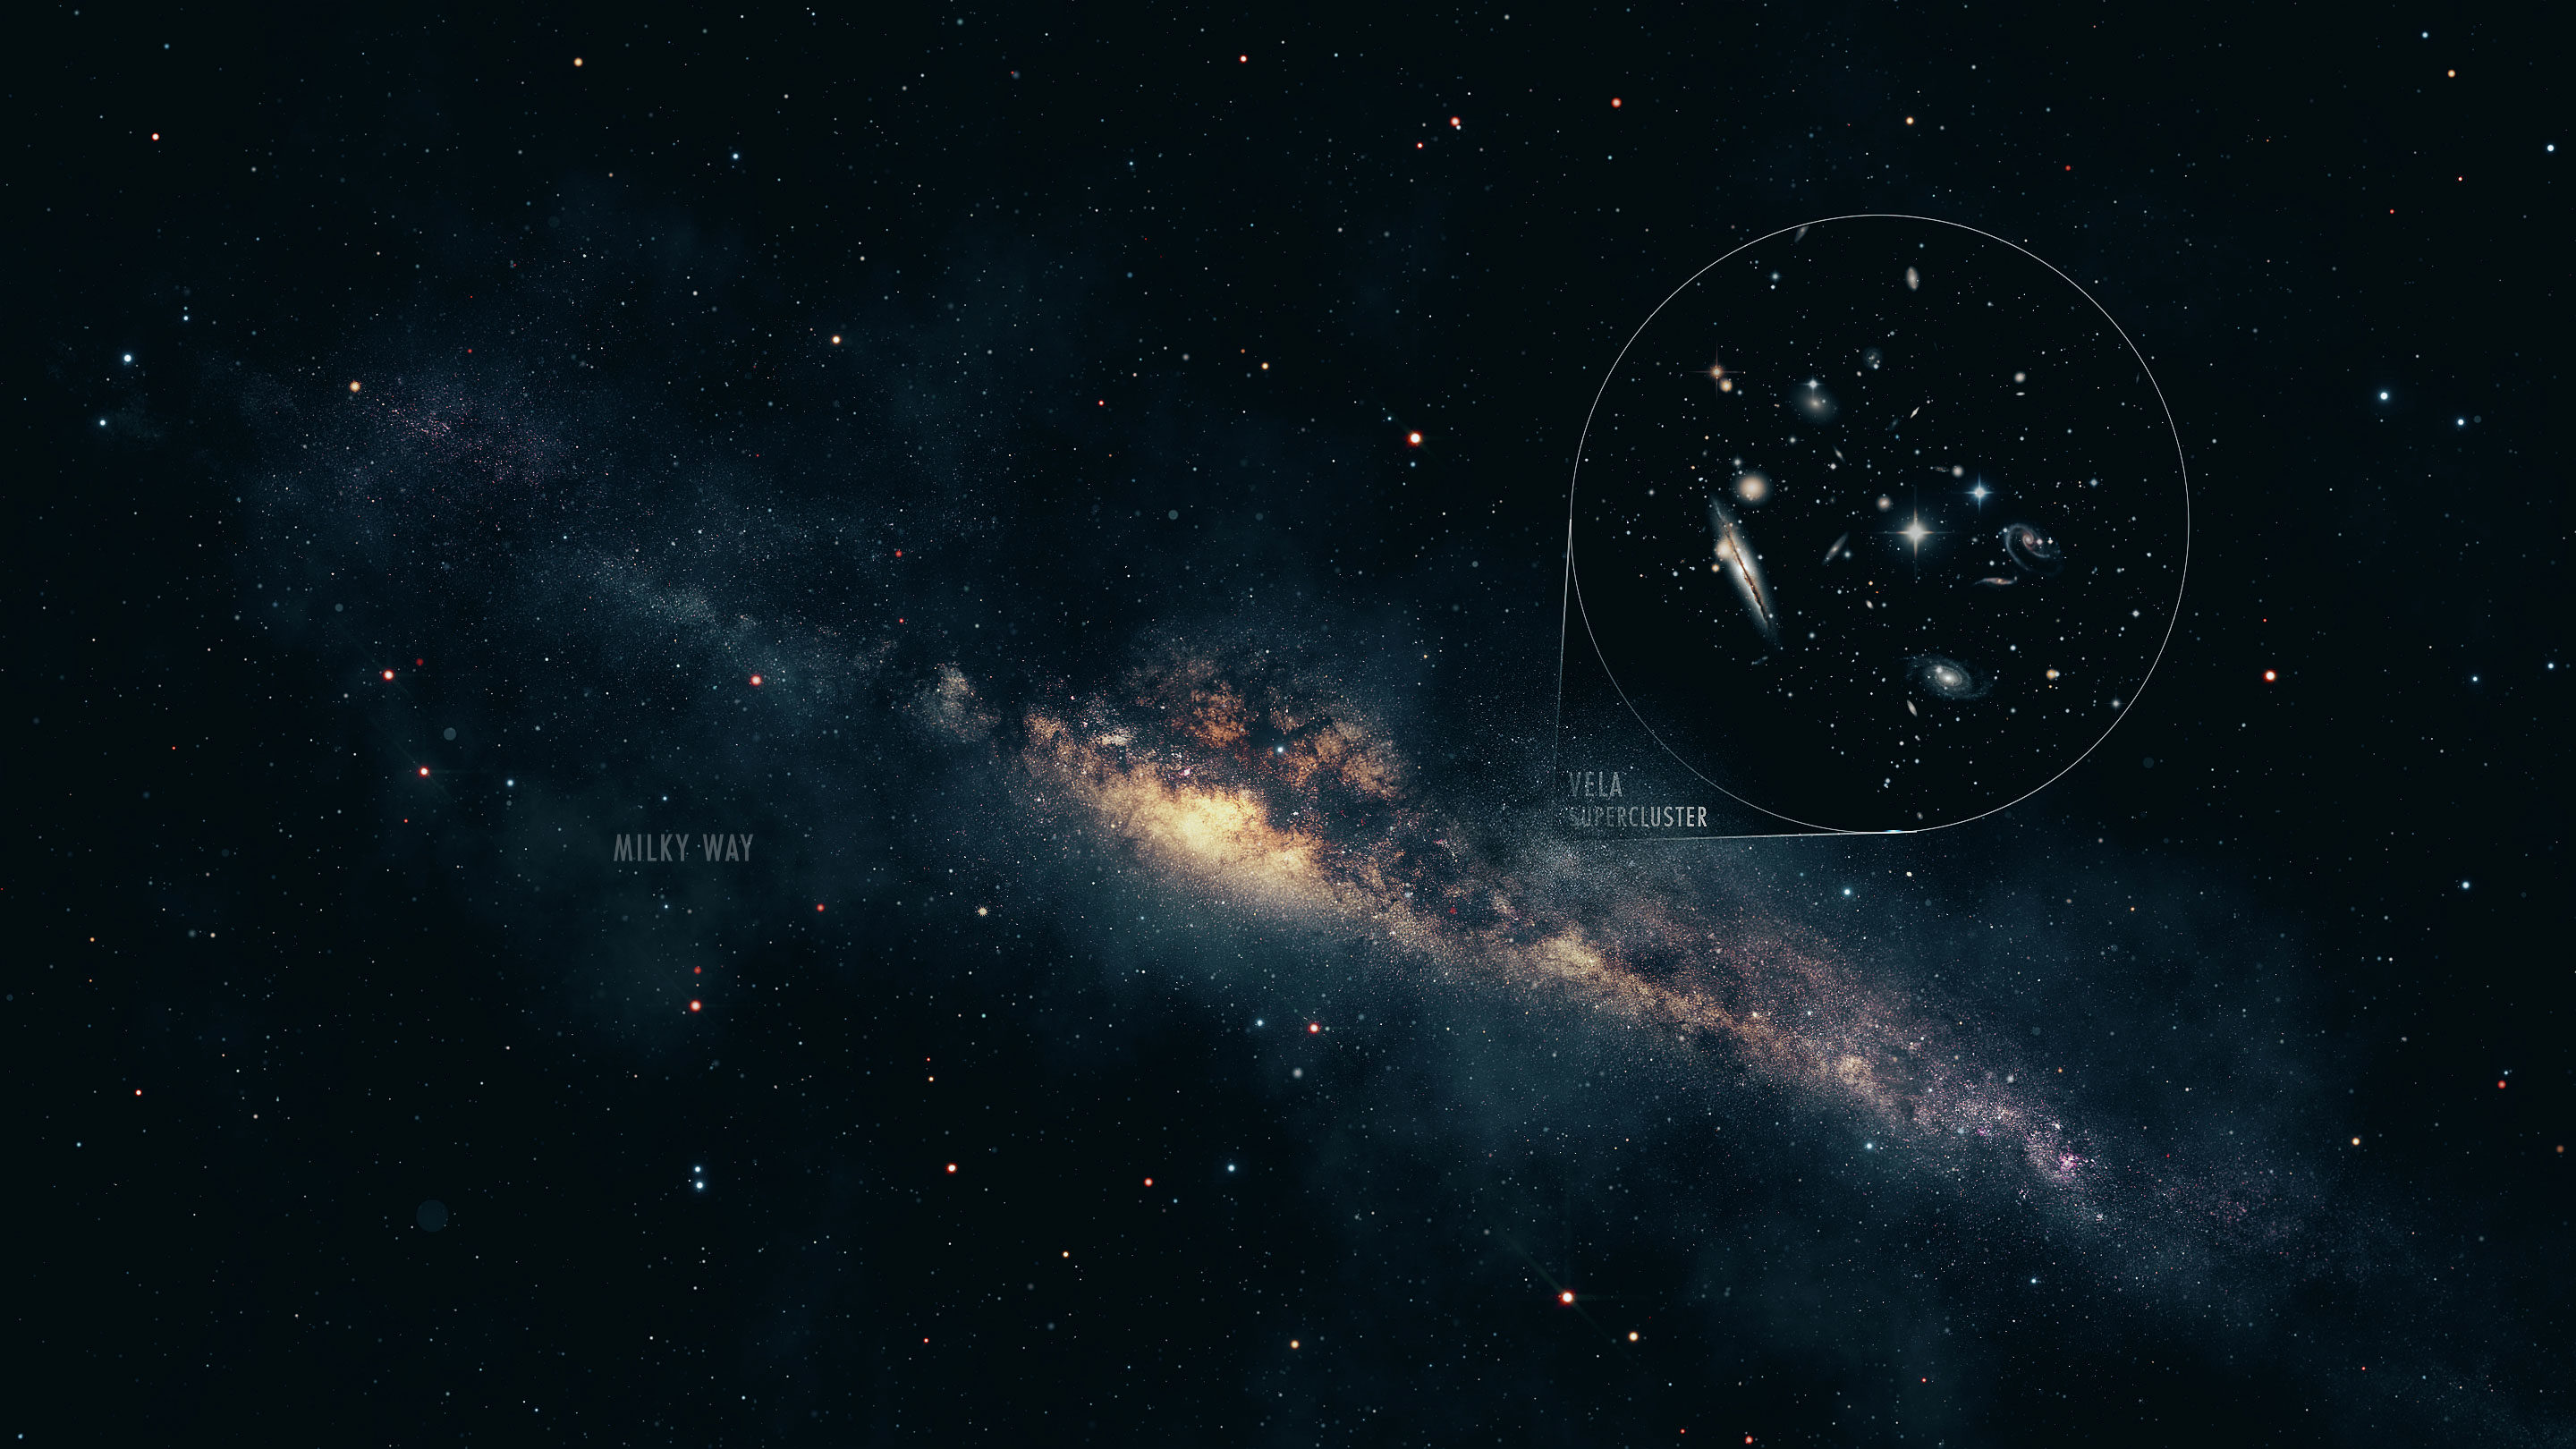 An illustration of the Vela Supercluster peeking out from behind the Milky Way's Zone of Avoidance.